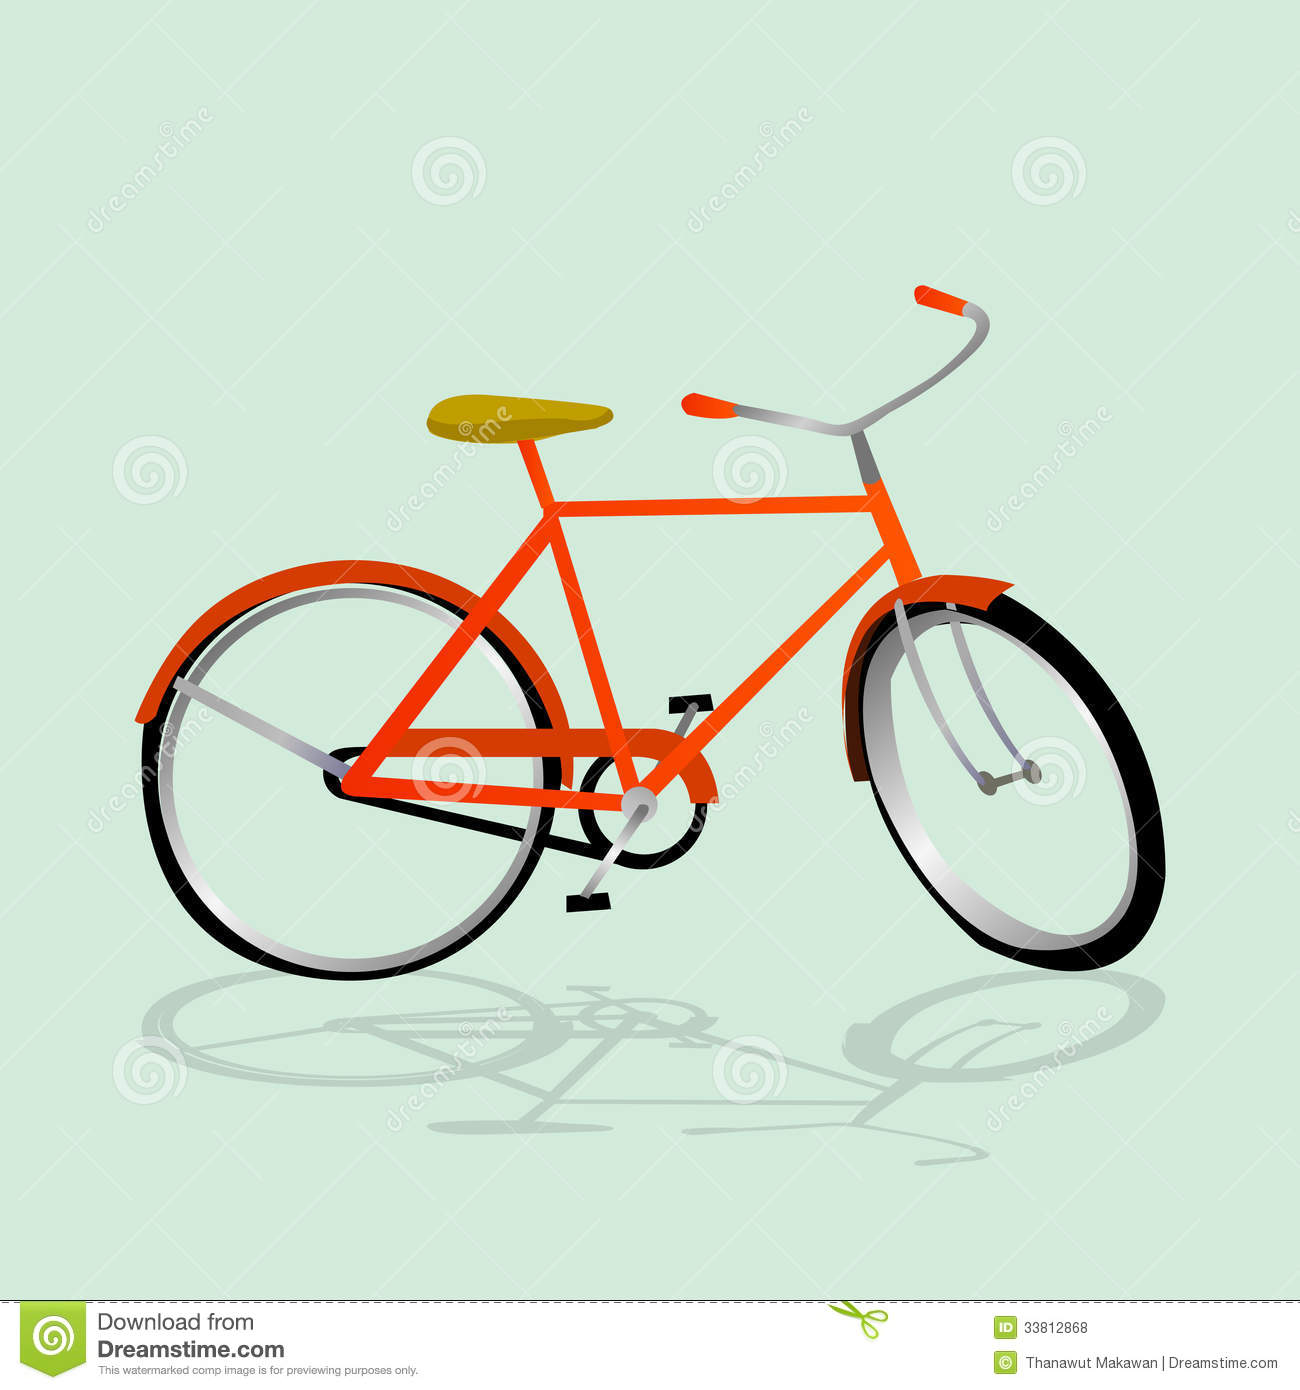 Simple bicycle illustration - photo#3